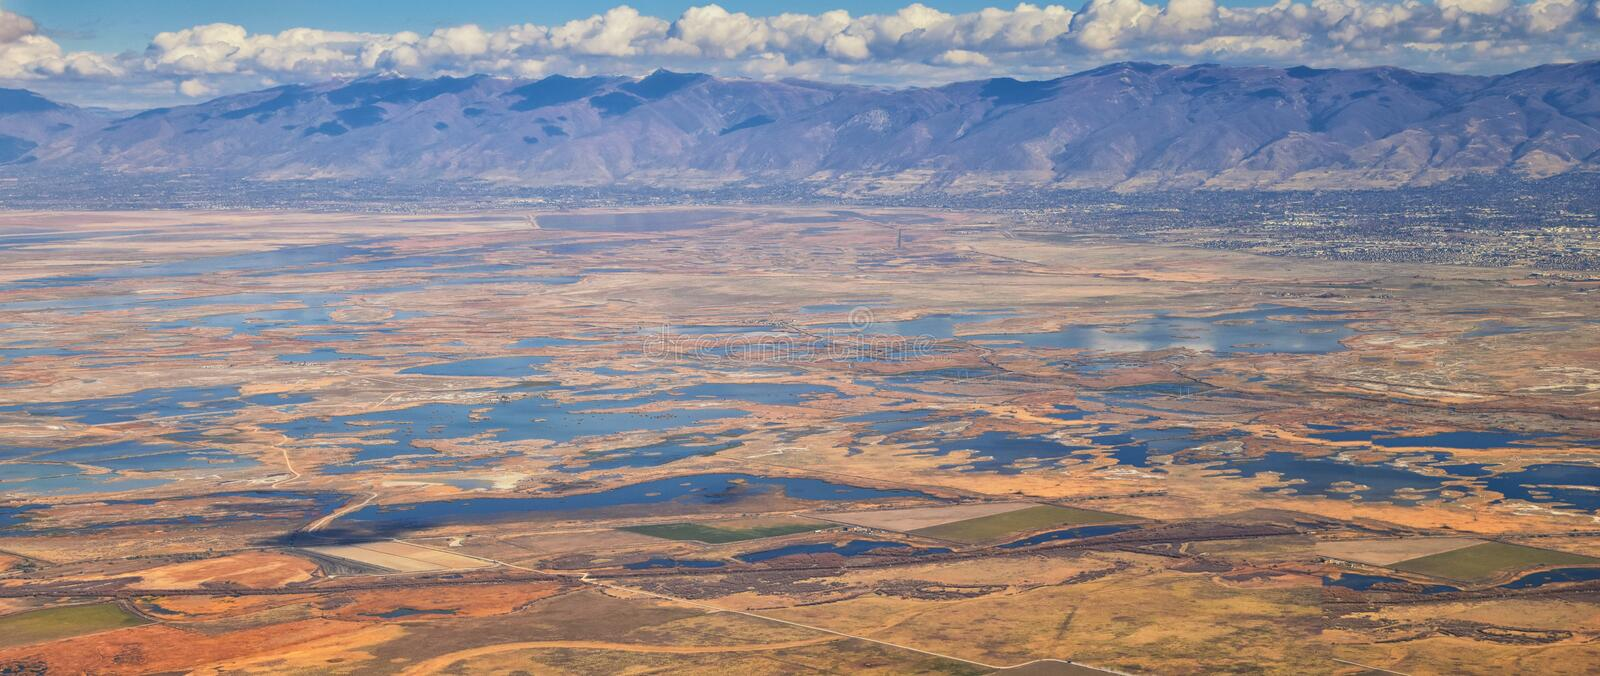 Aerial view of Wasatch Front Rocky Mountain landscapes on flight over Colorado and Utah during winter. Grand sweeping views near t stock photo